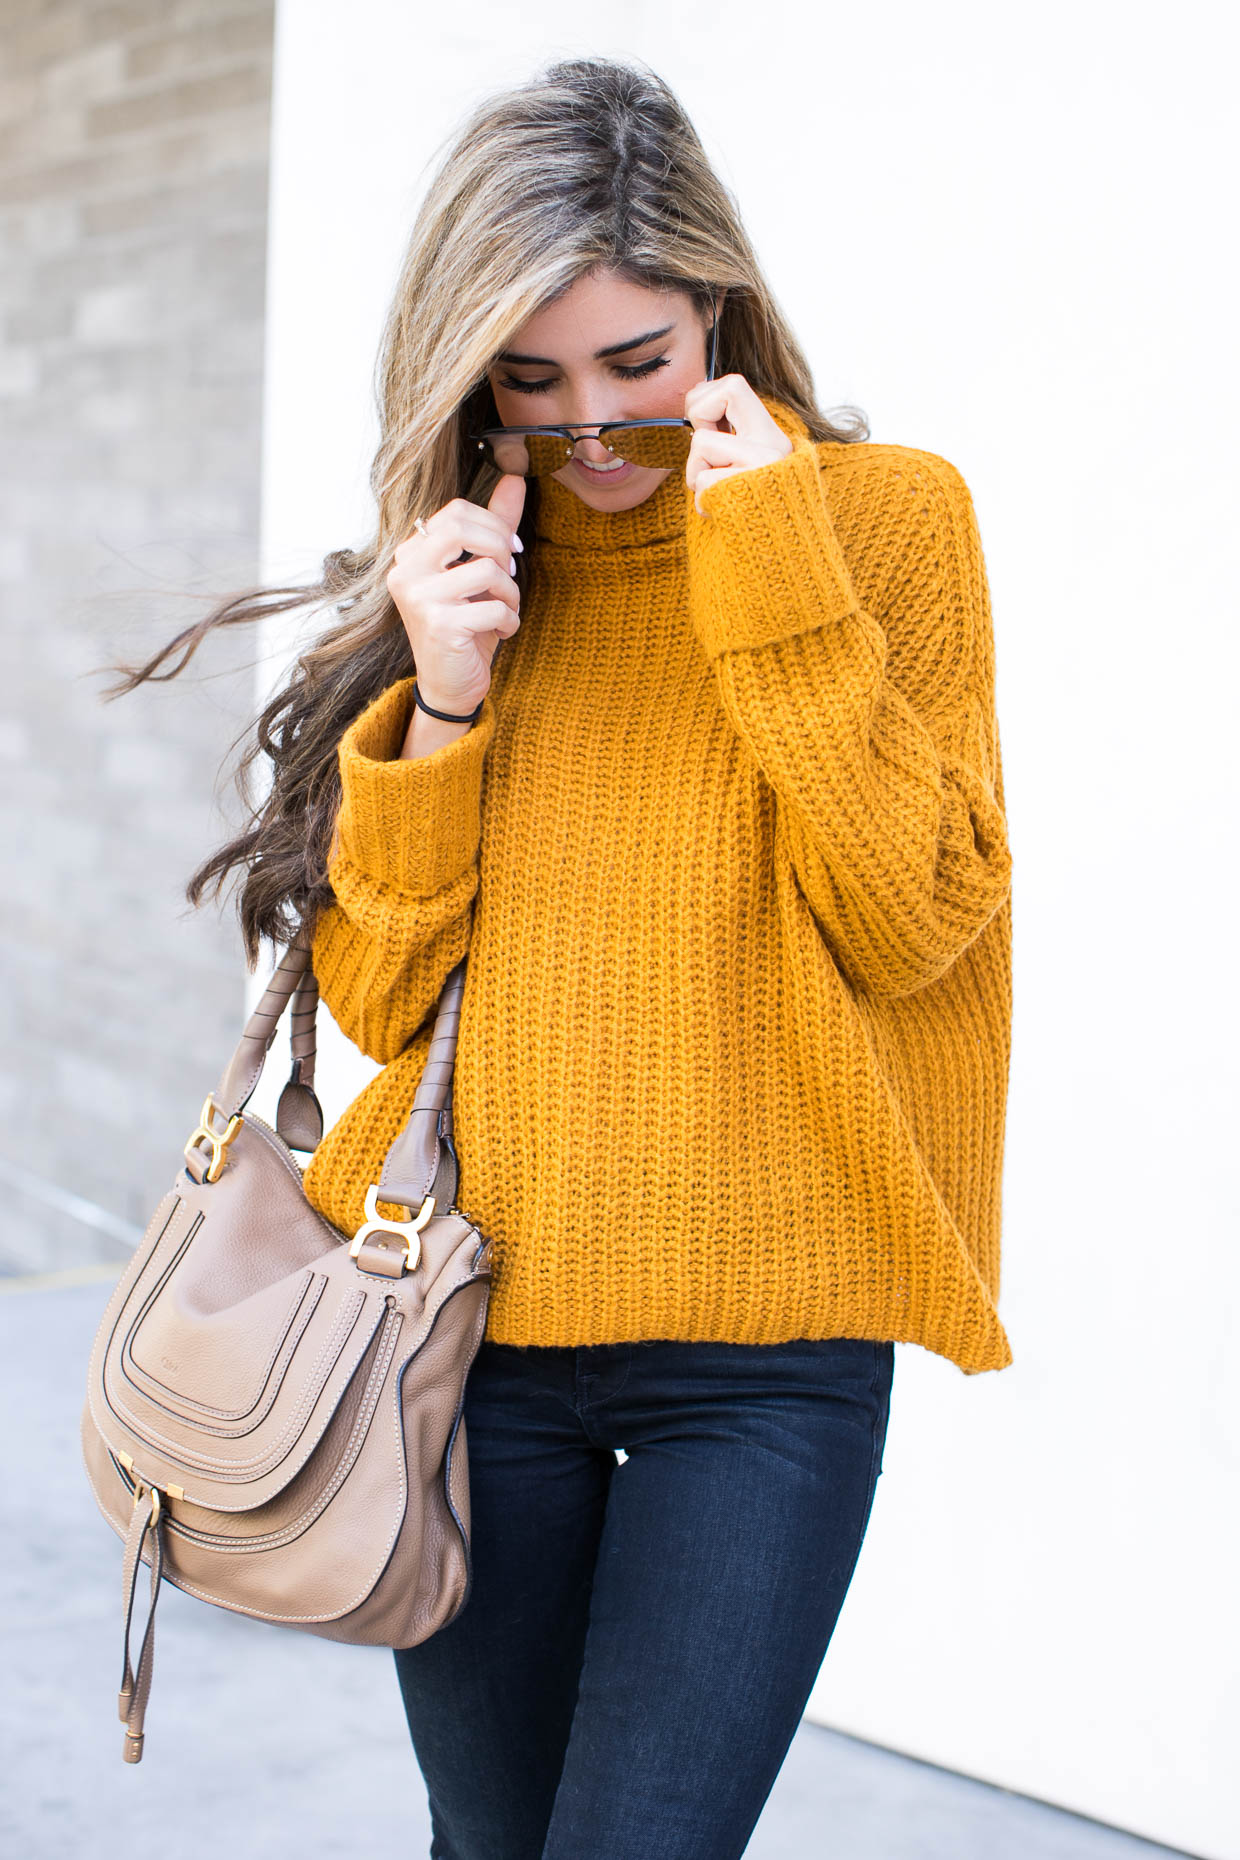 Fashion blogger The Darling Detail wears Leith Chunky Turtleneck Sweater, FRAME 'Le High Skinny' High Rise Crop Jeans (Sterling), LE SPECS 'The Prince' 57mm Sunglasses, Chloe 'Marcie - Small' Leather Satchel, Larsson & Jennings 'Lugano' Mesh Strap Watch